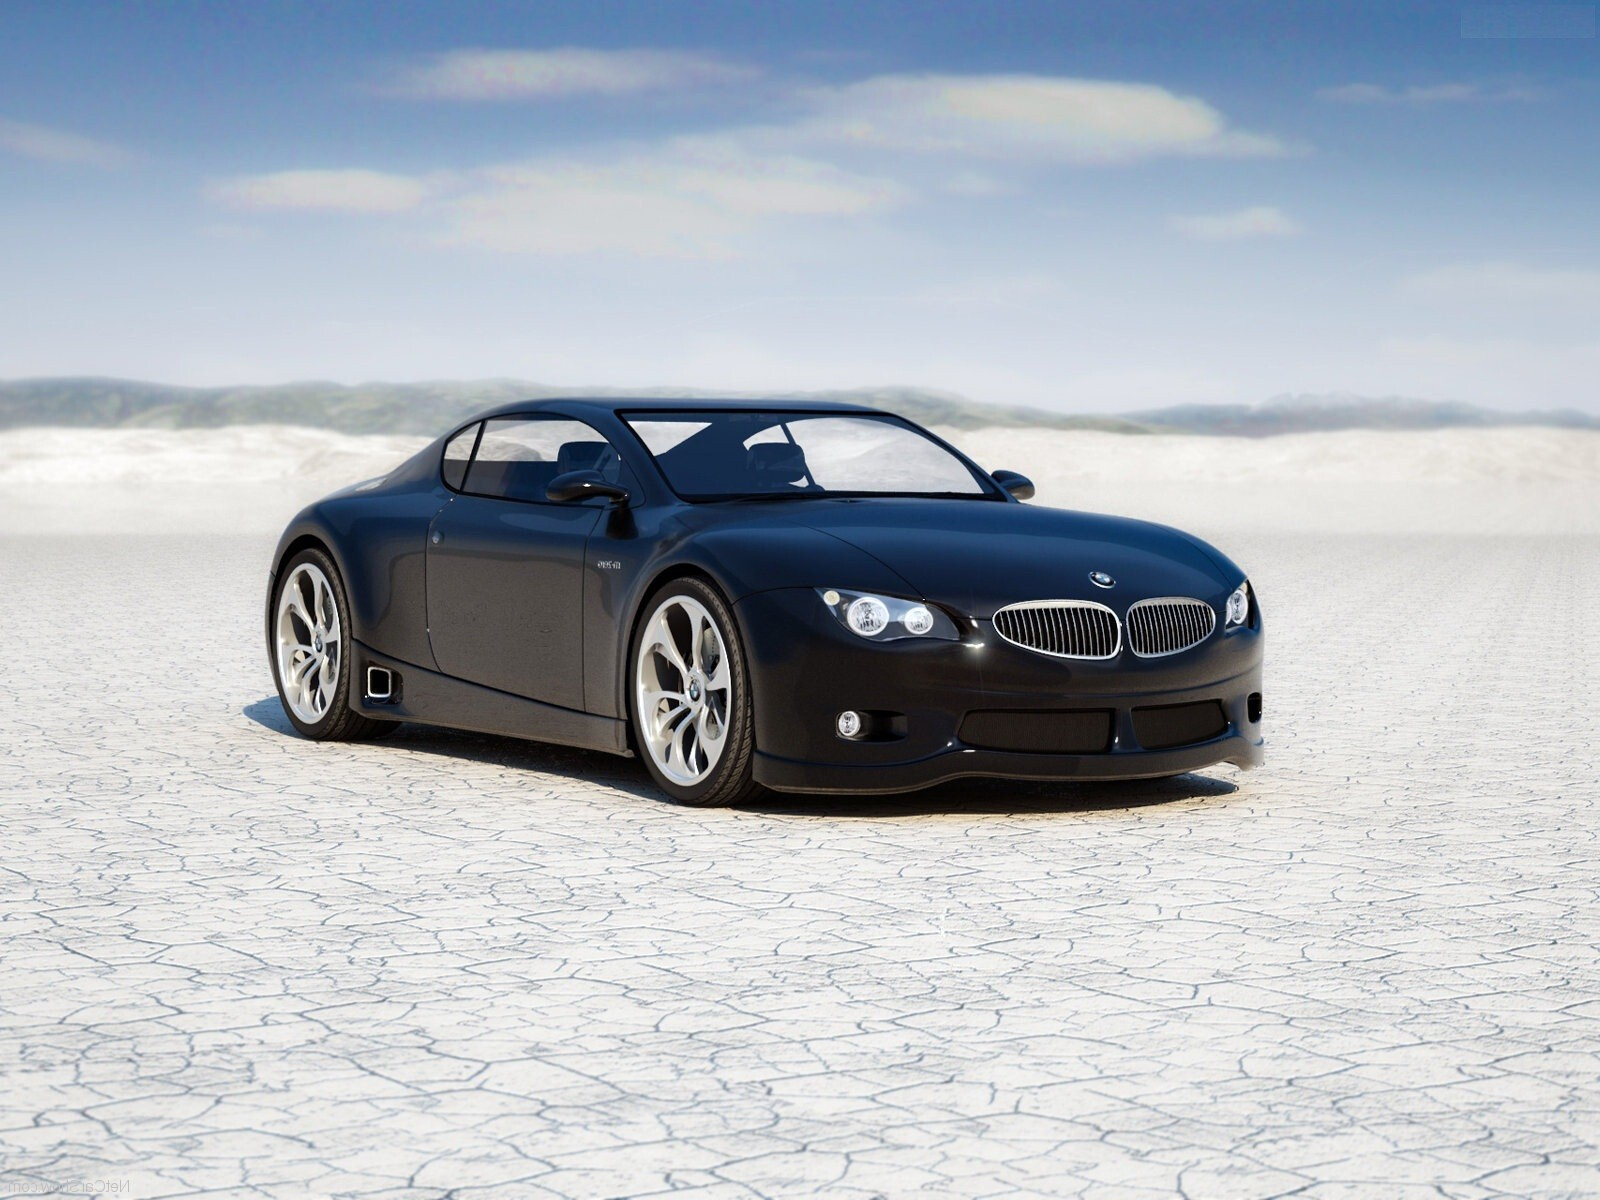 Black Bmw M Zero Luxury Car Hd Wallpaper Hd Wallpapers